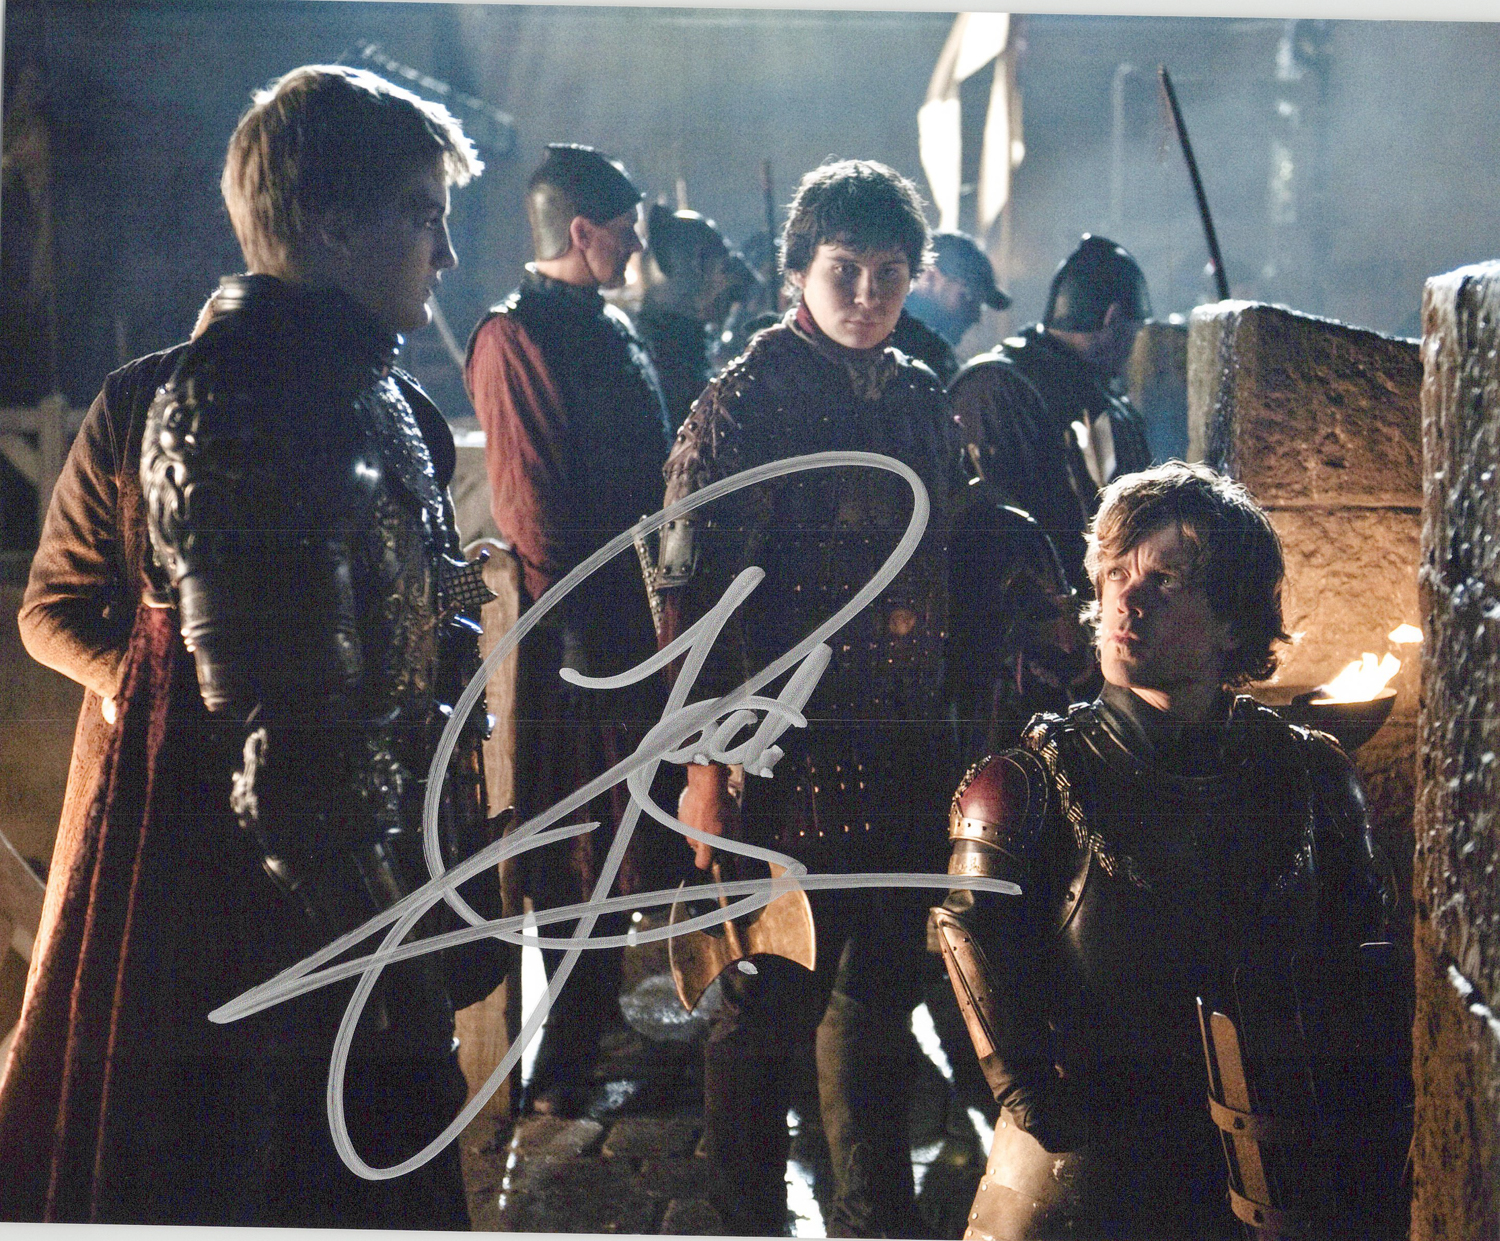 Jack Gleeson Original Autogramm auf Foto 20x25cm - Game of Thrones